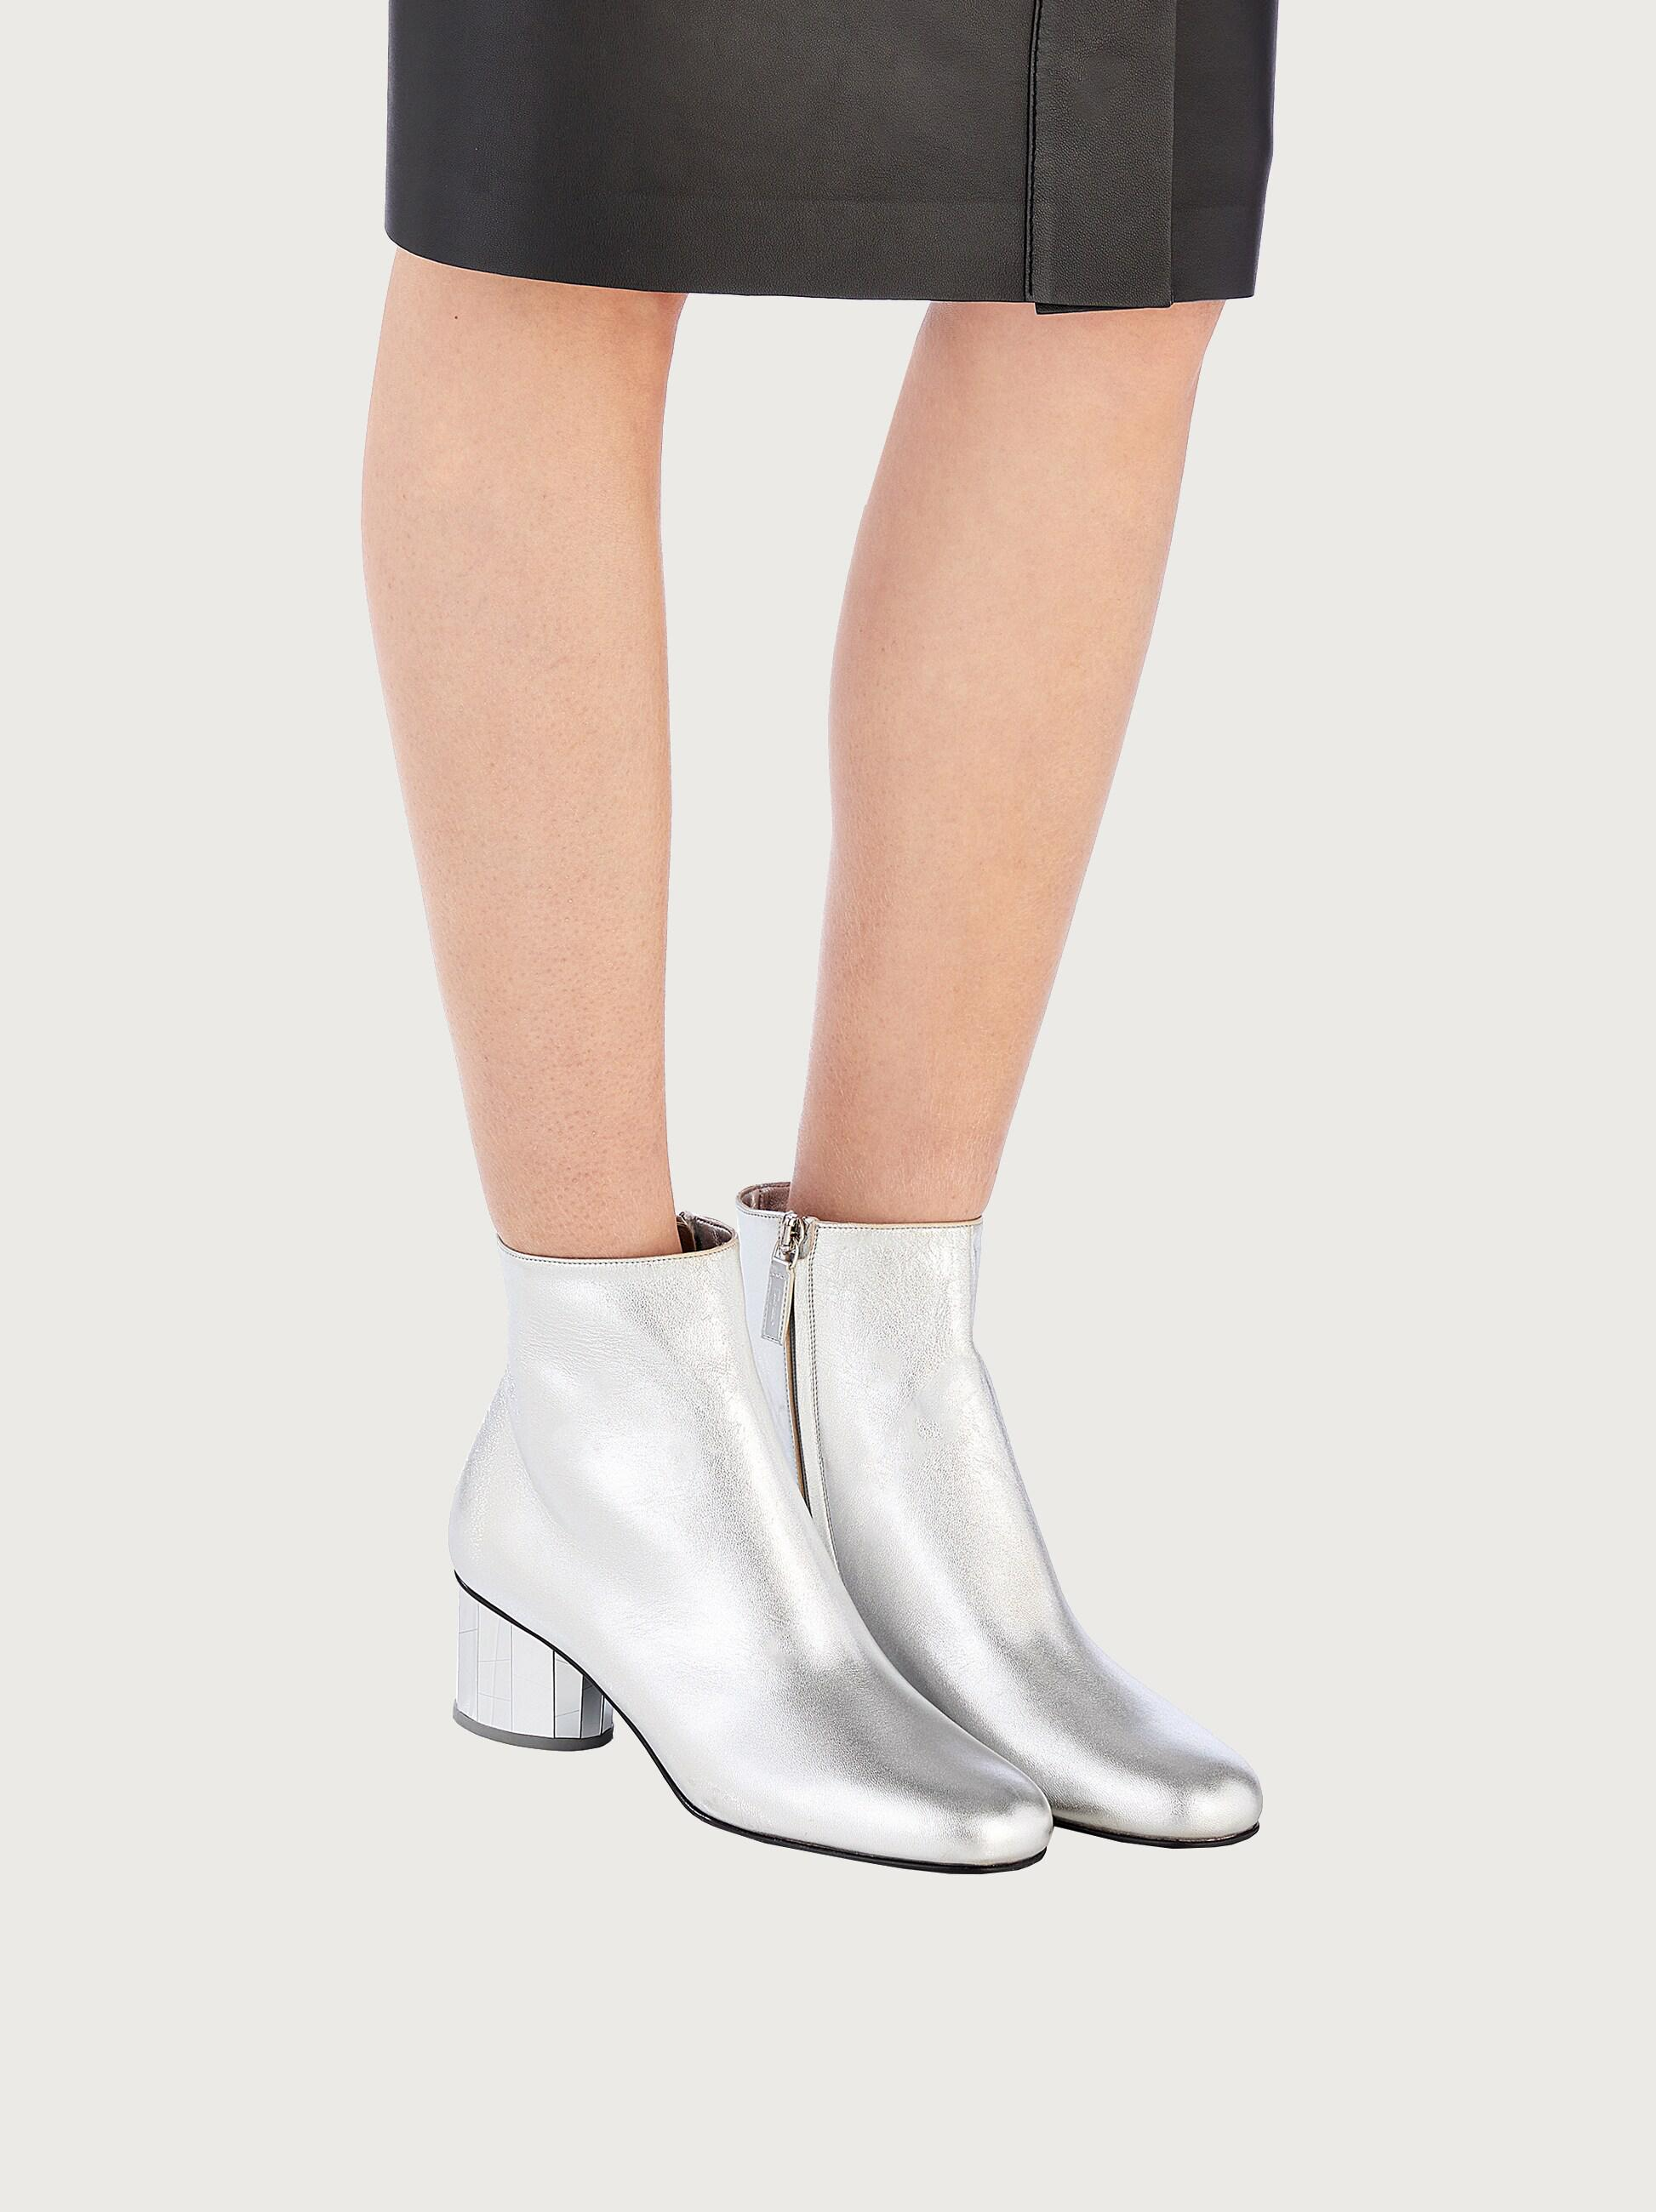 MIRRORED HEEL ANKLE BOOT 4